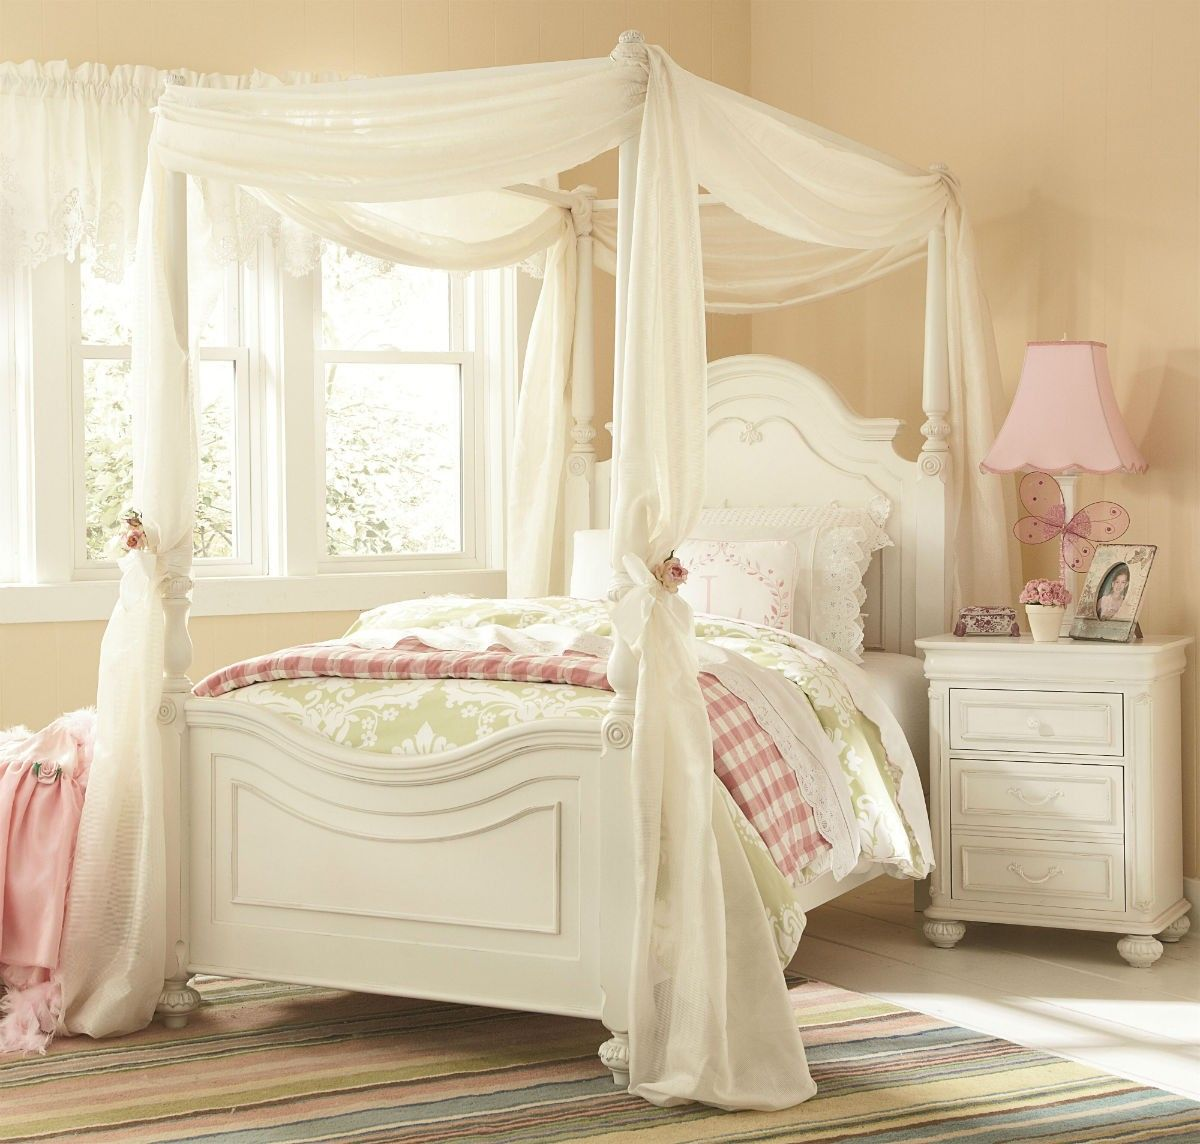 19 fabulous canopy bed designs for your little princess tyana canopy bedroom sets canopy. Black Bedroom Furniture Sets. Home Design Ideas